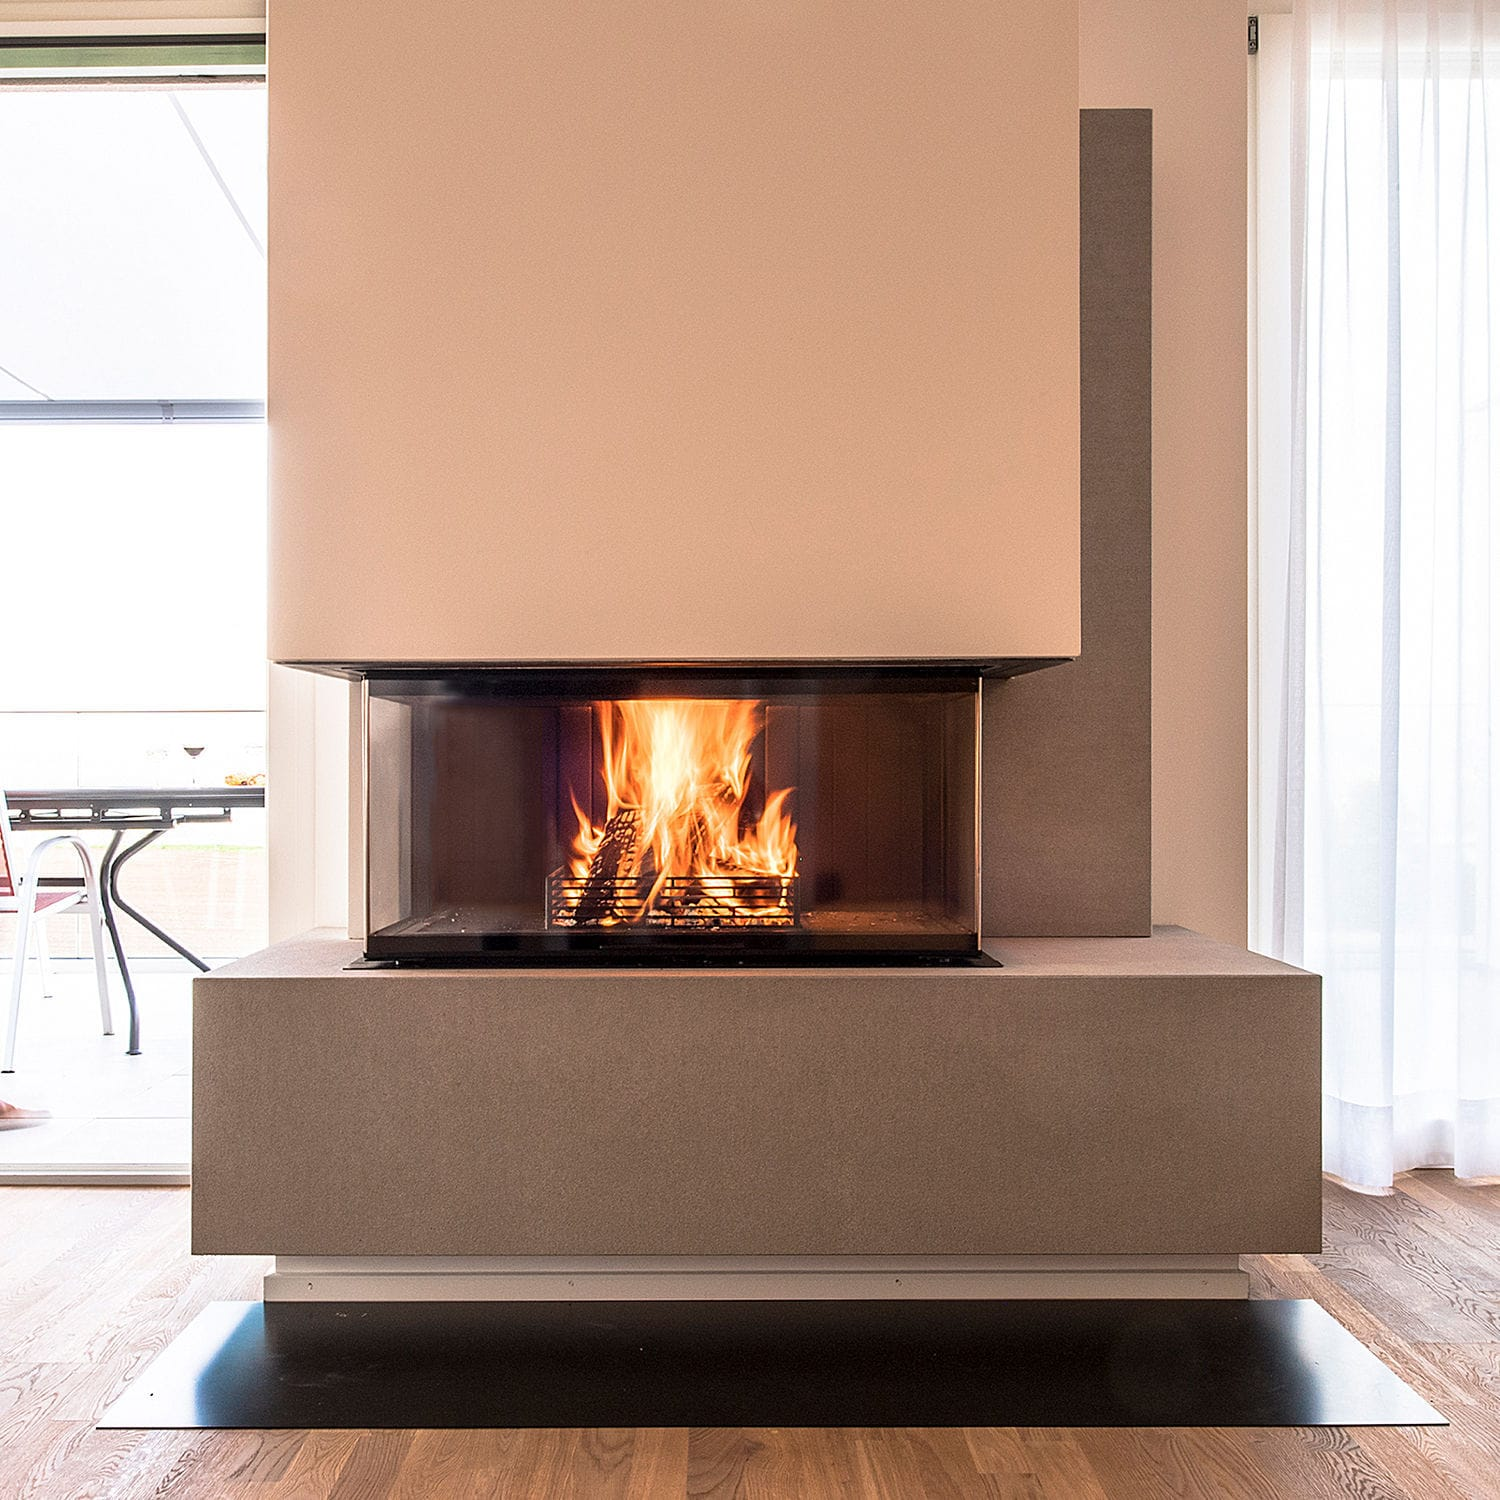 Running Gas Line To Fireplace Wood Burning Fireplace Contemporary Closed Hearth 3 Sided Flex Line RÜegg Riii Rüegg Cheminée Schweiz Ag